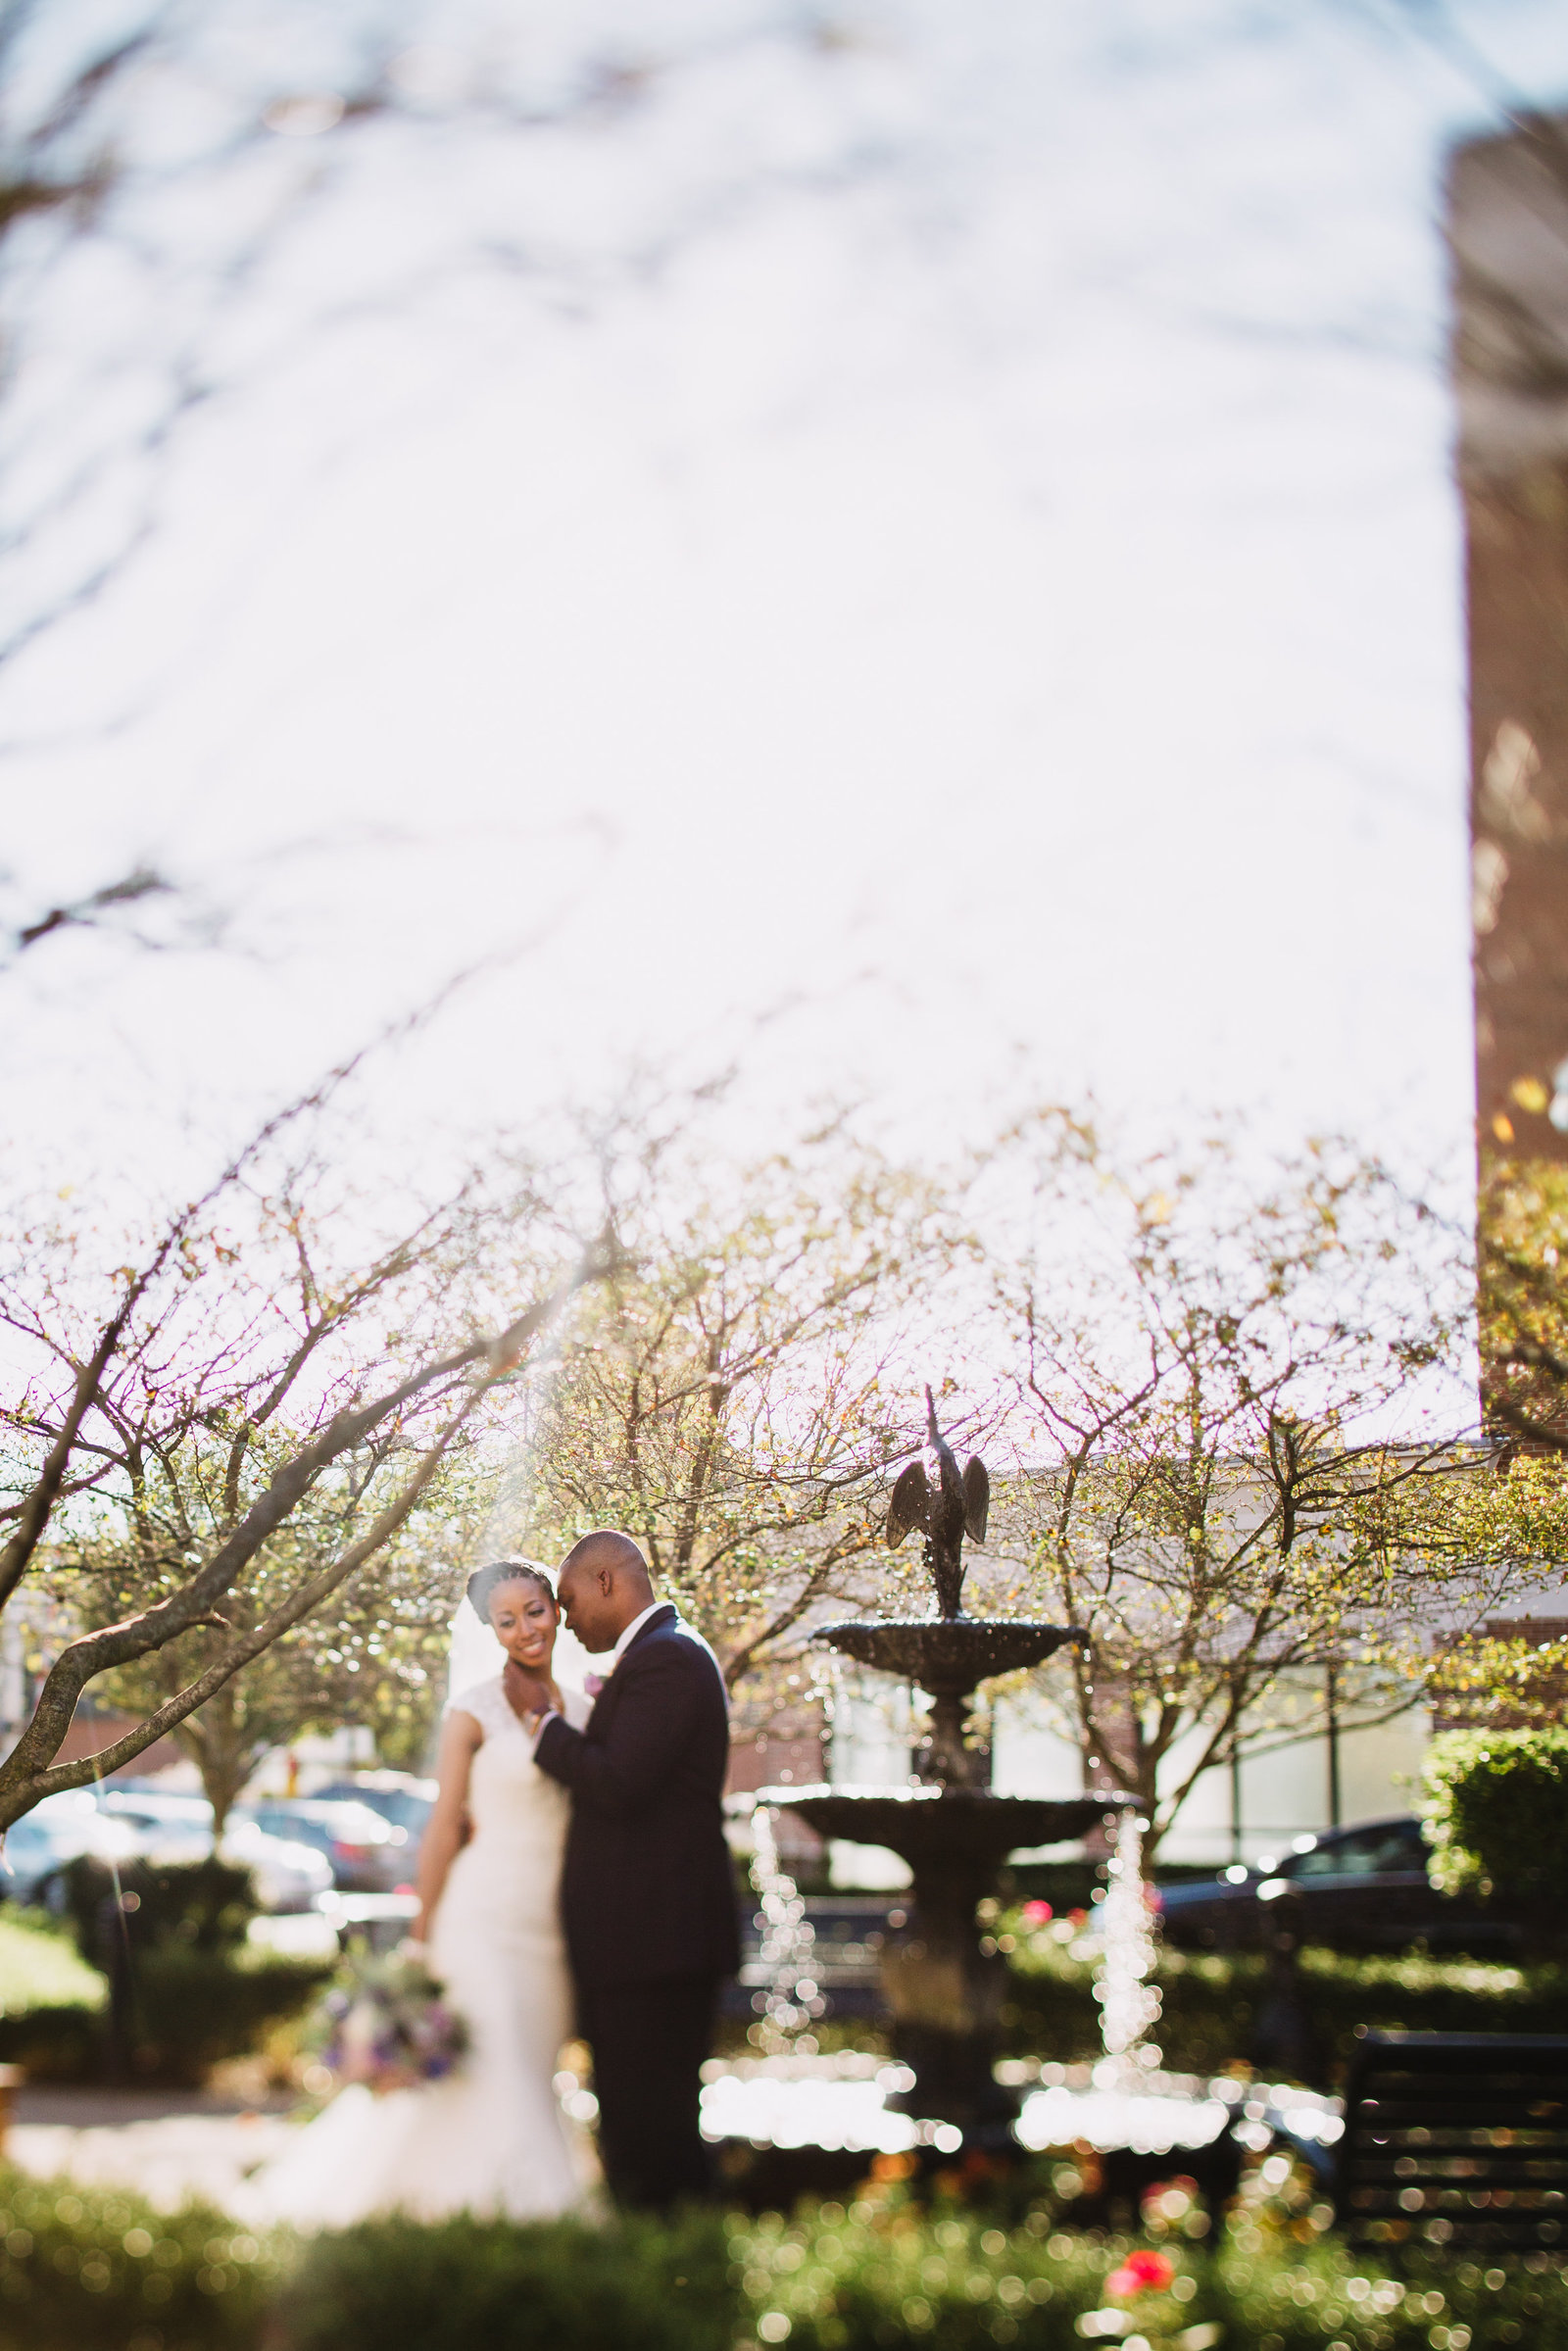 Erica Kay Photography - Kanesha & Kadawni Wedding-568